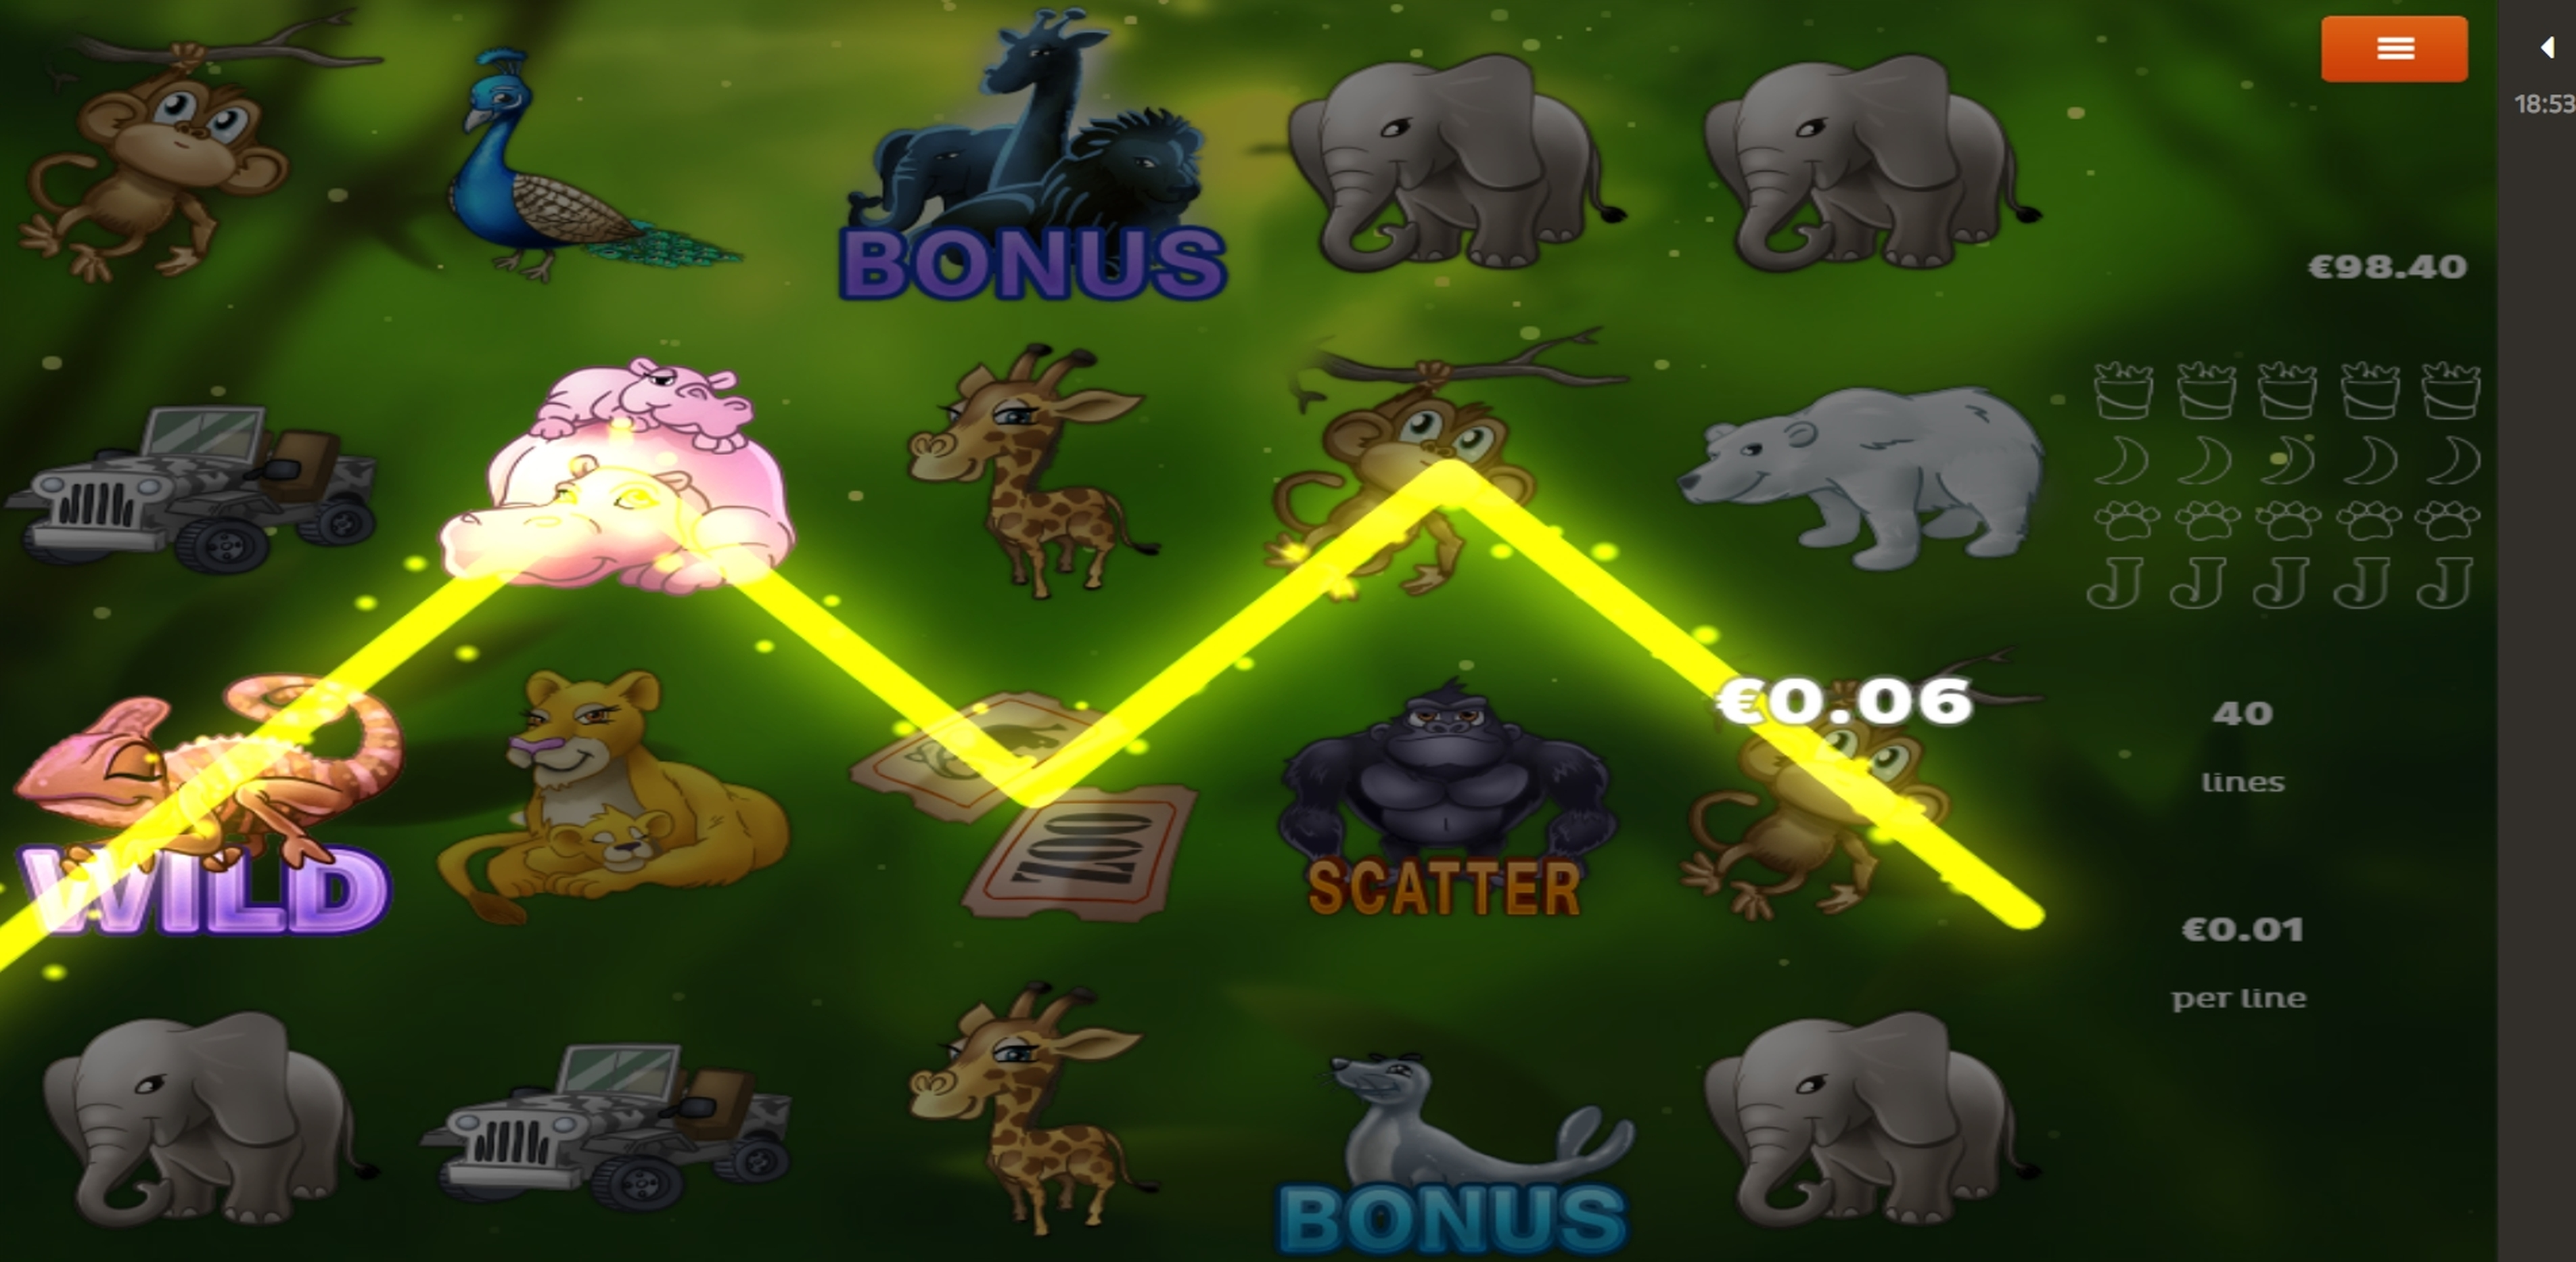 Win Money in Zoo Free Slot Game by Spigo